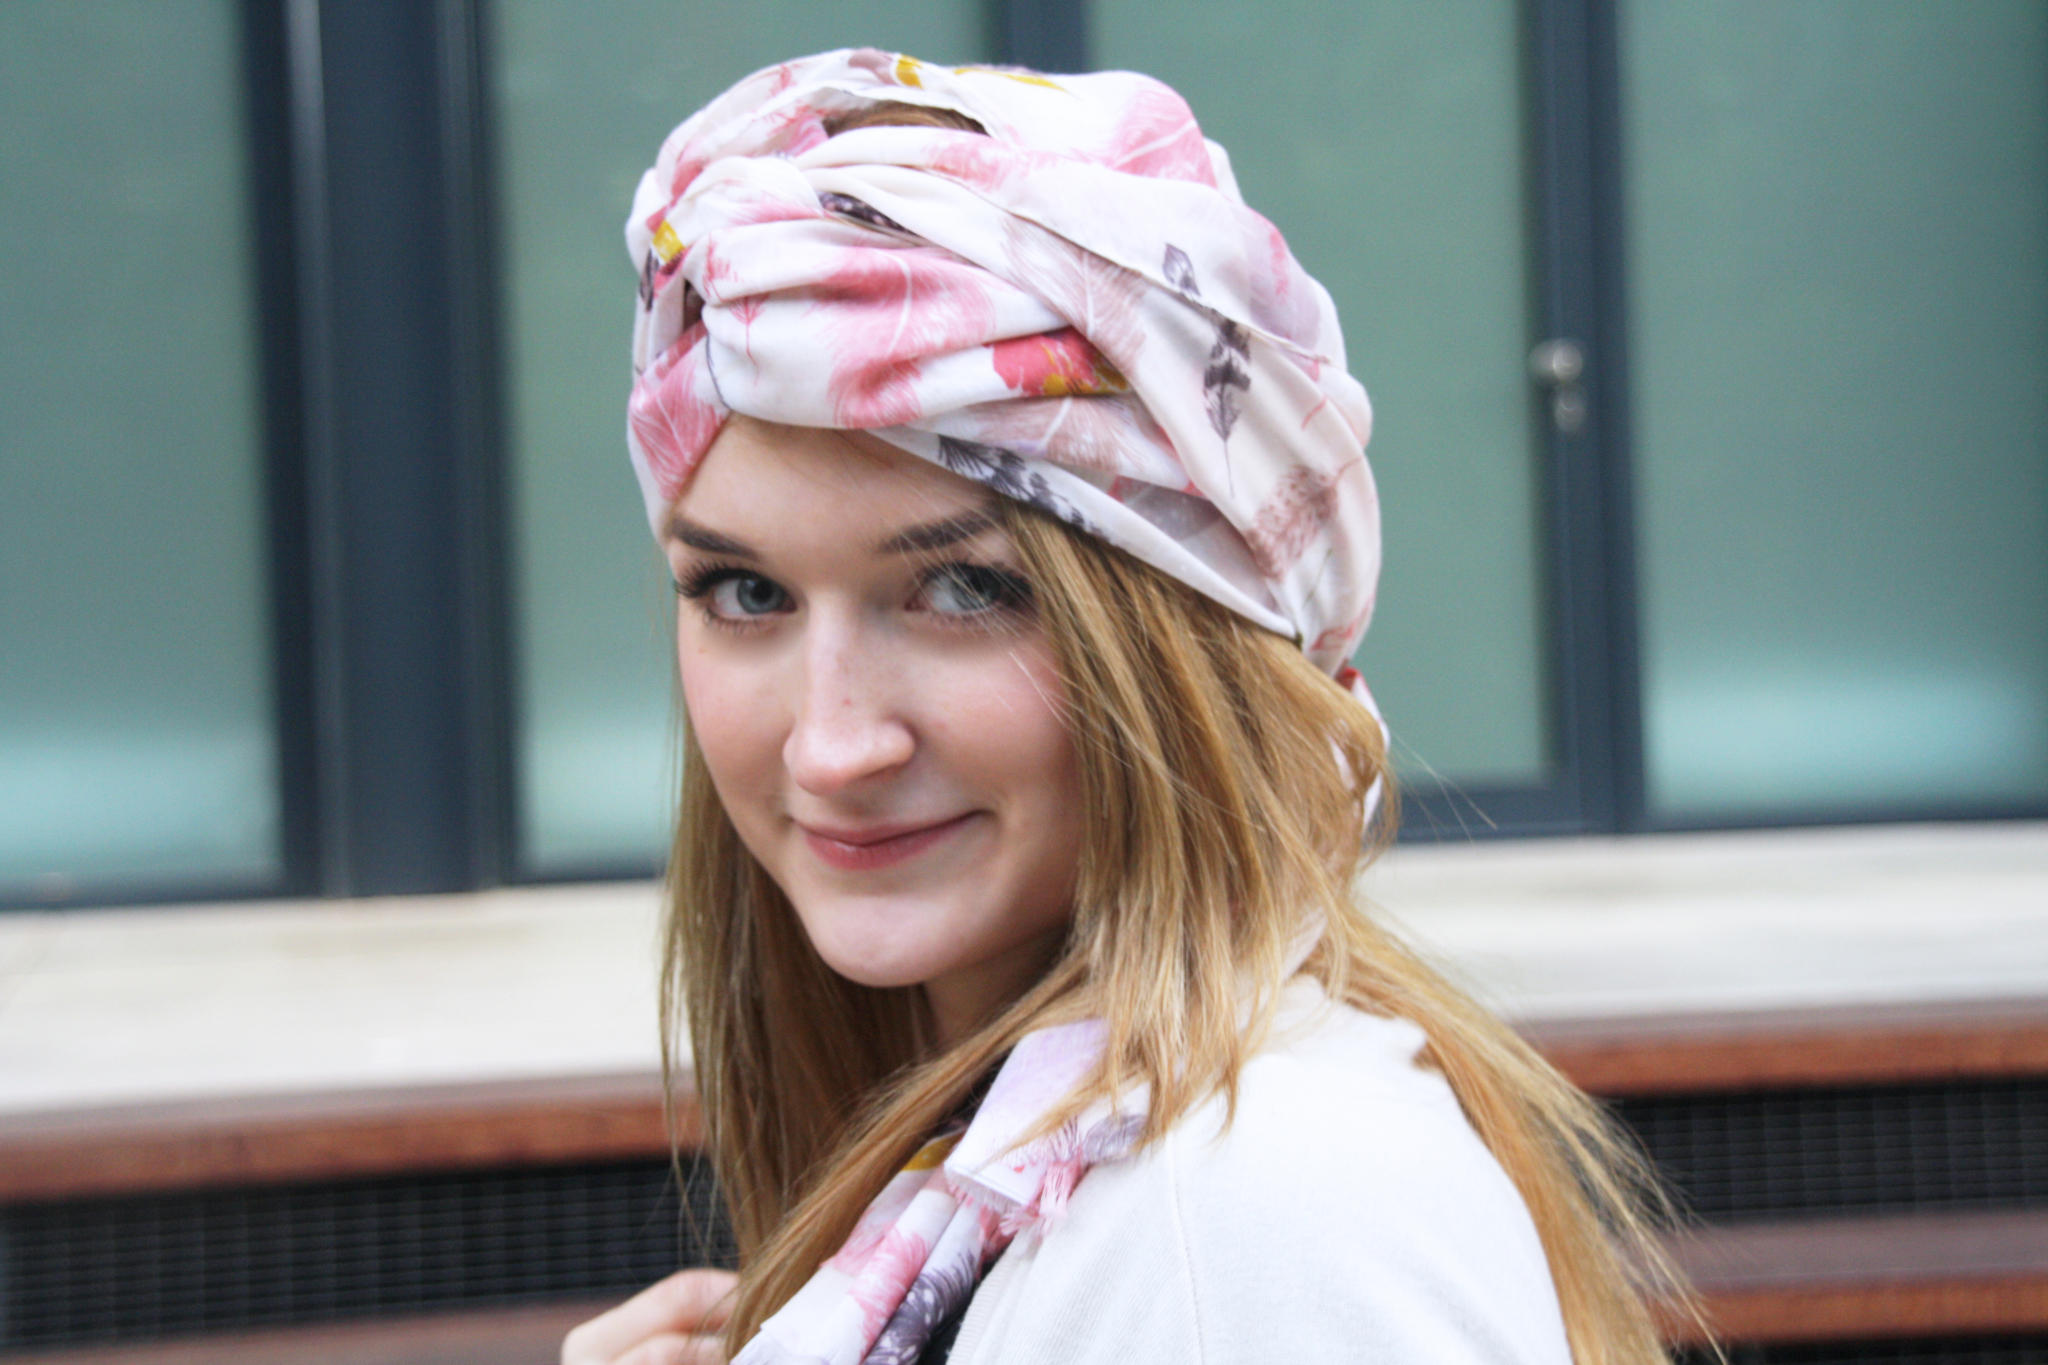 MAG Mode Turban binden